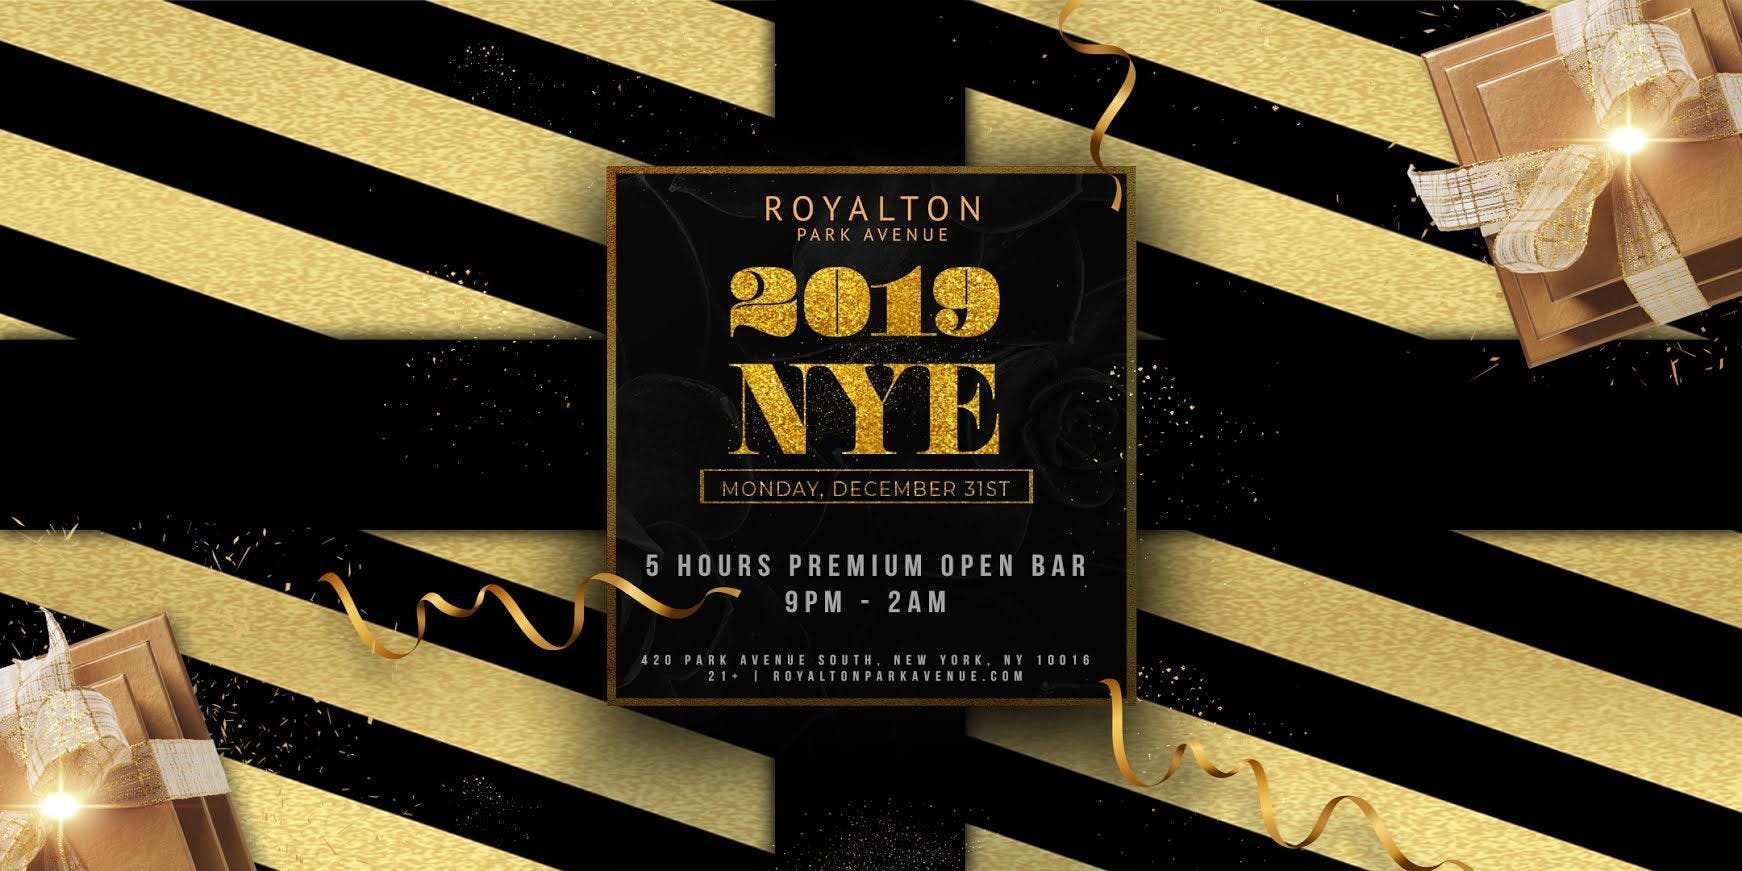 New Year's Eve 2019 at Royalton Park Avenue w